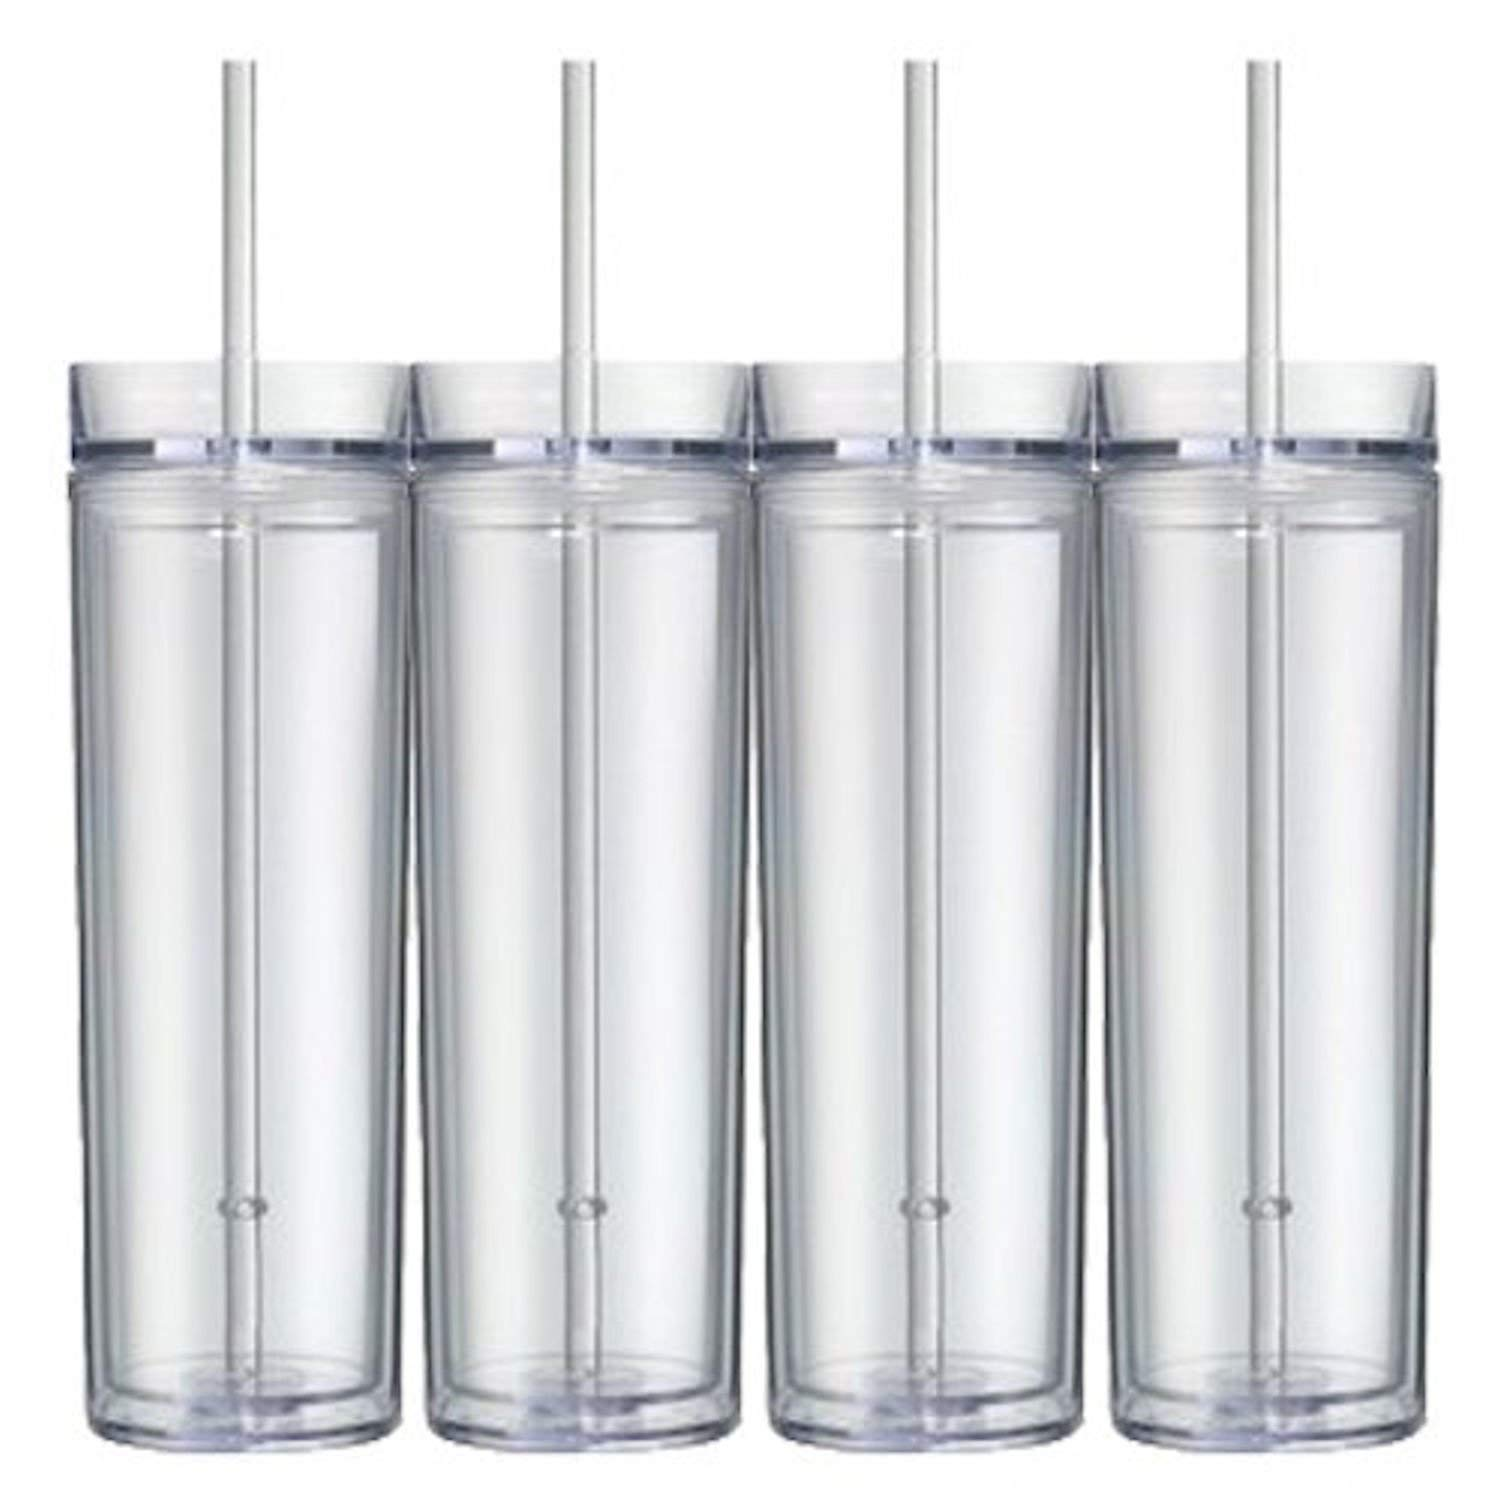 0a8d23000c1 Get Quotations · Set of 4 Clear Tall Skinny Tumblers, Acrylic 16 Ounce  Tumblers with Straw, Blank